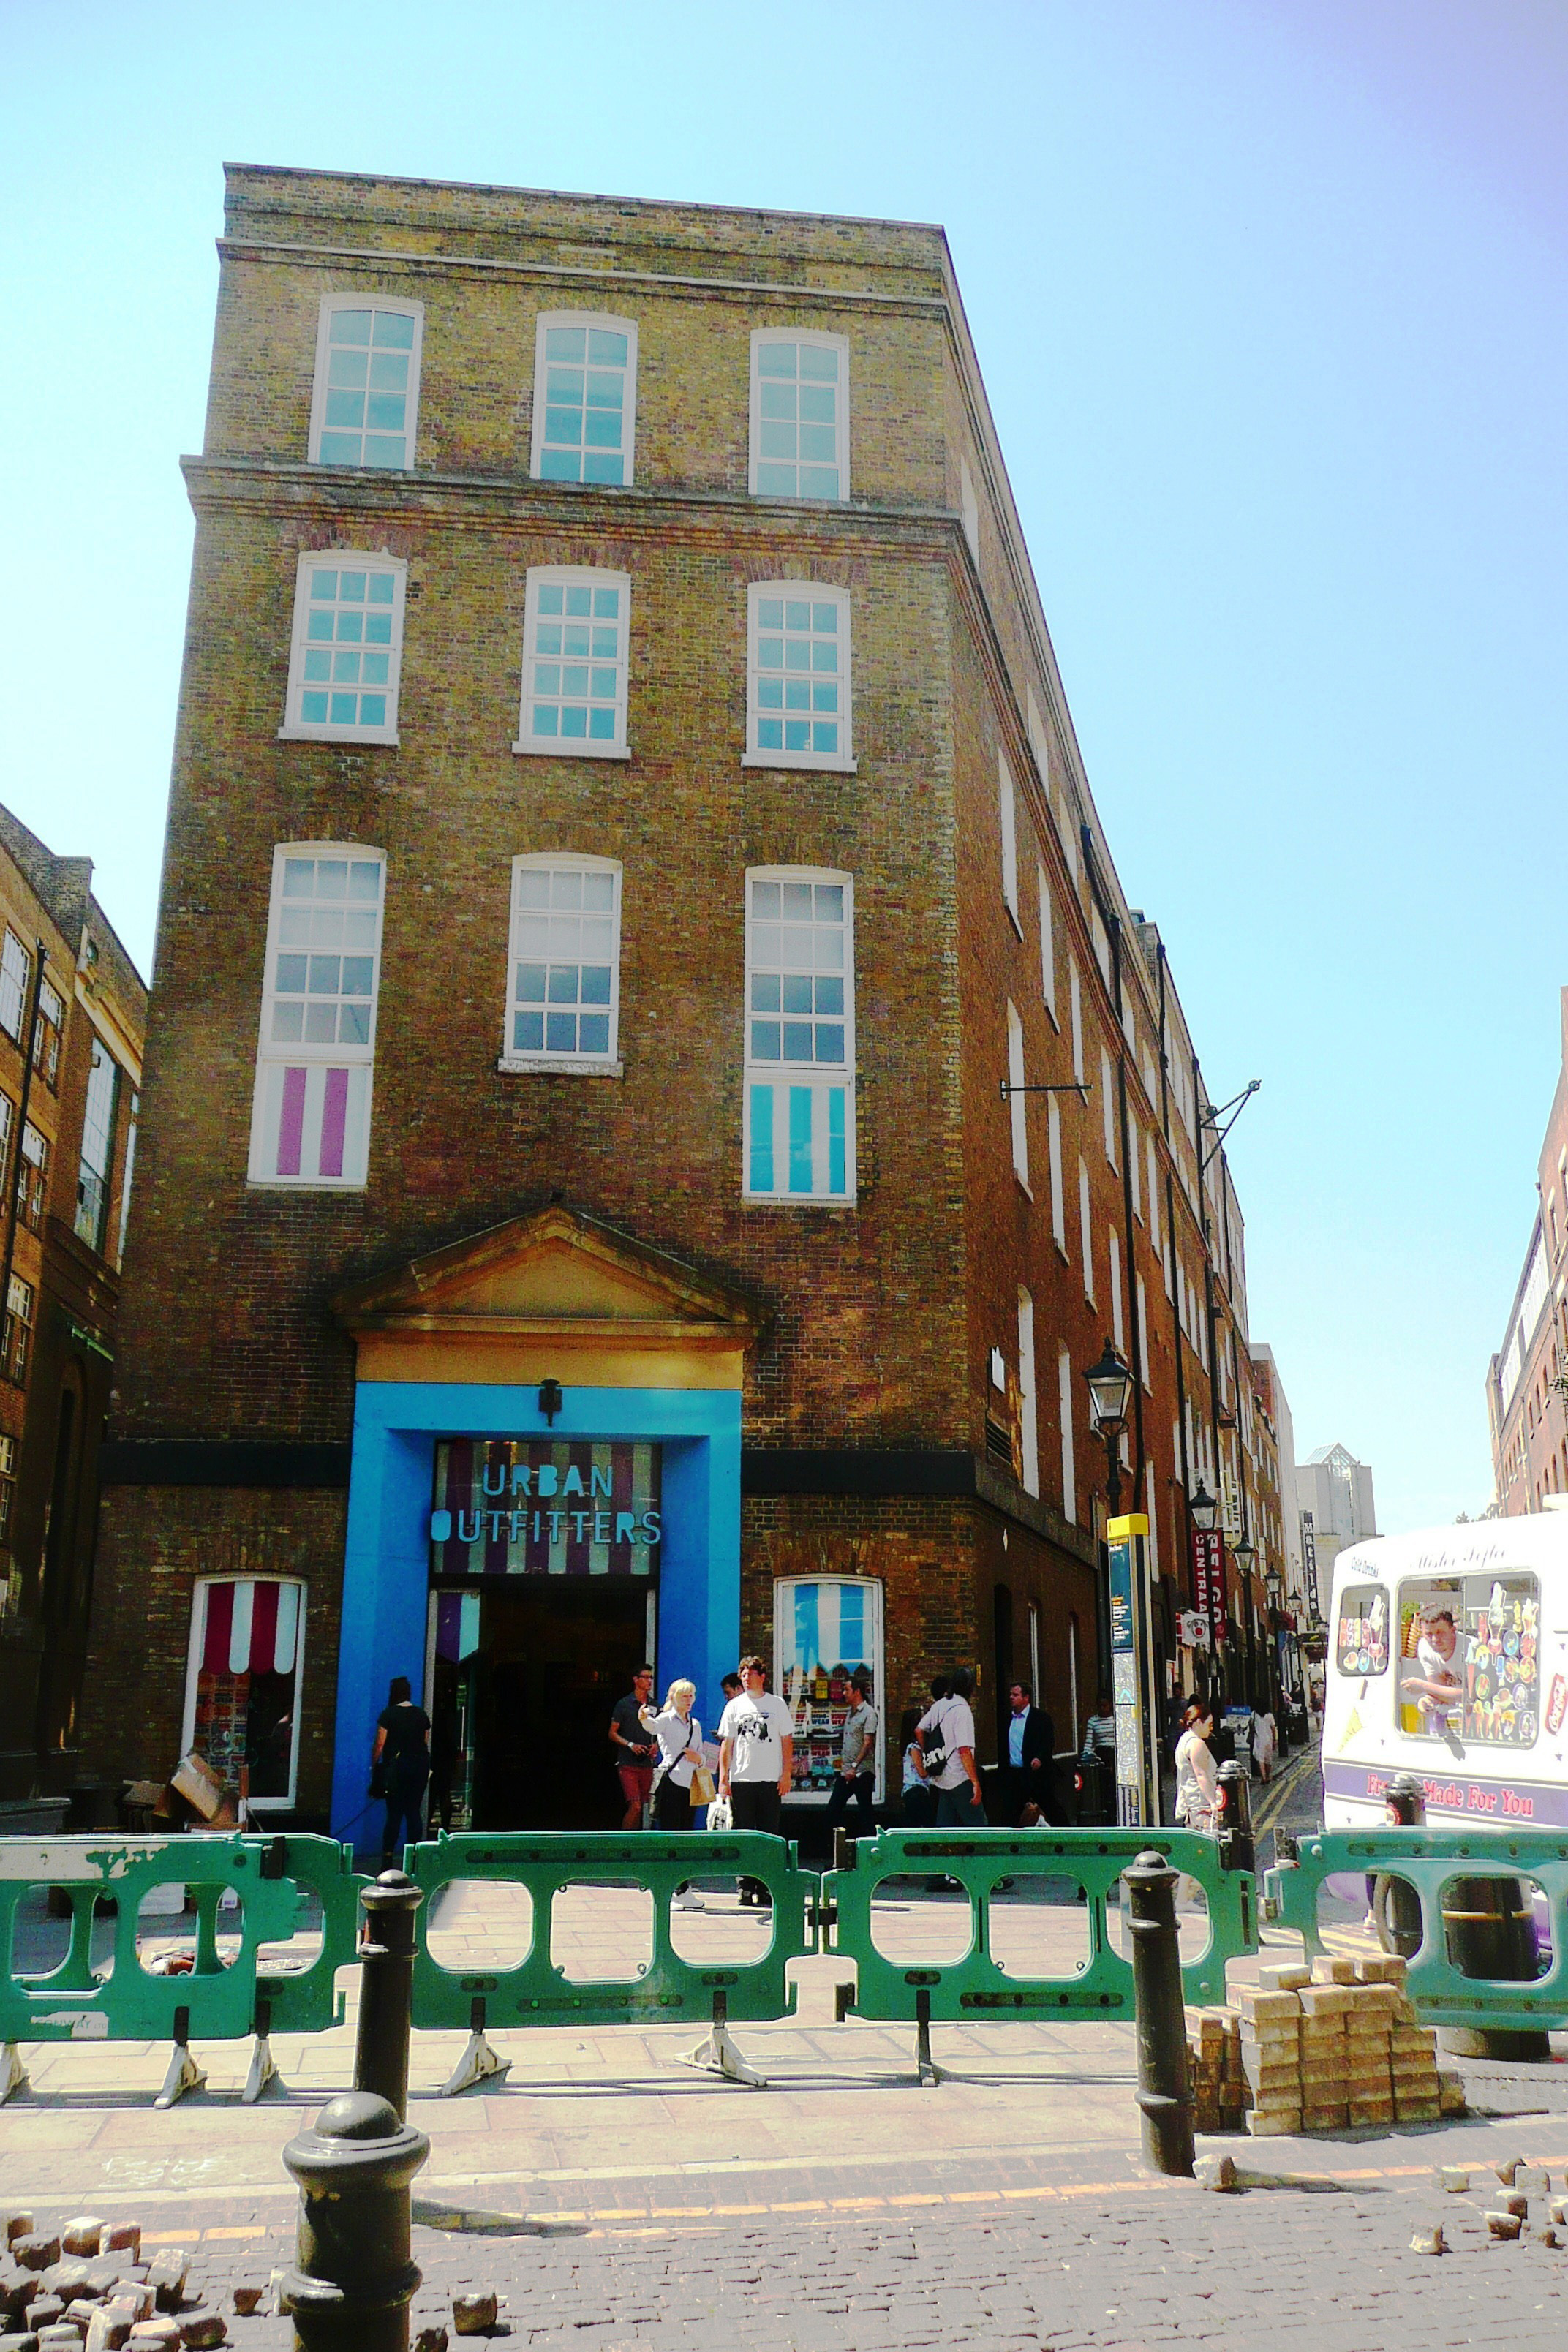 Seven Dials key 18c ex-brewery building listed.